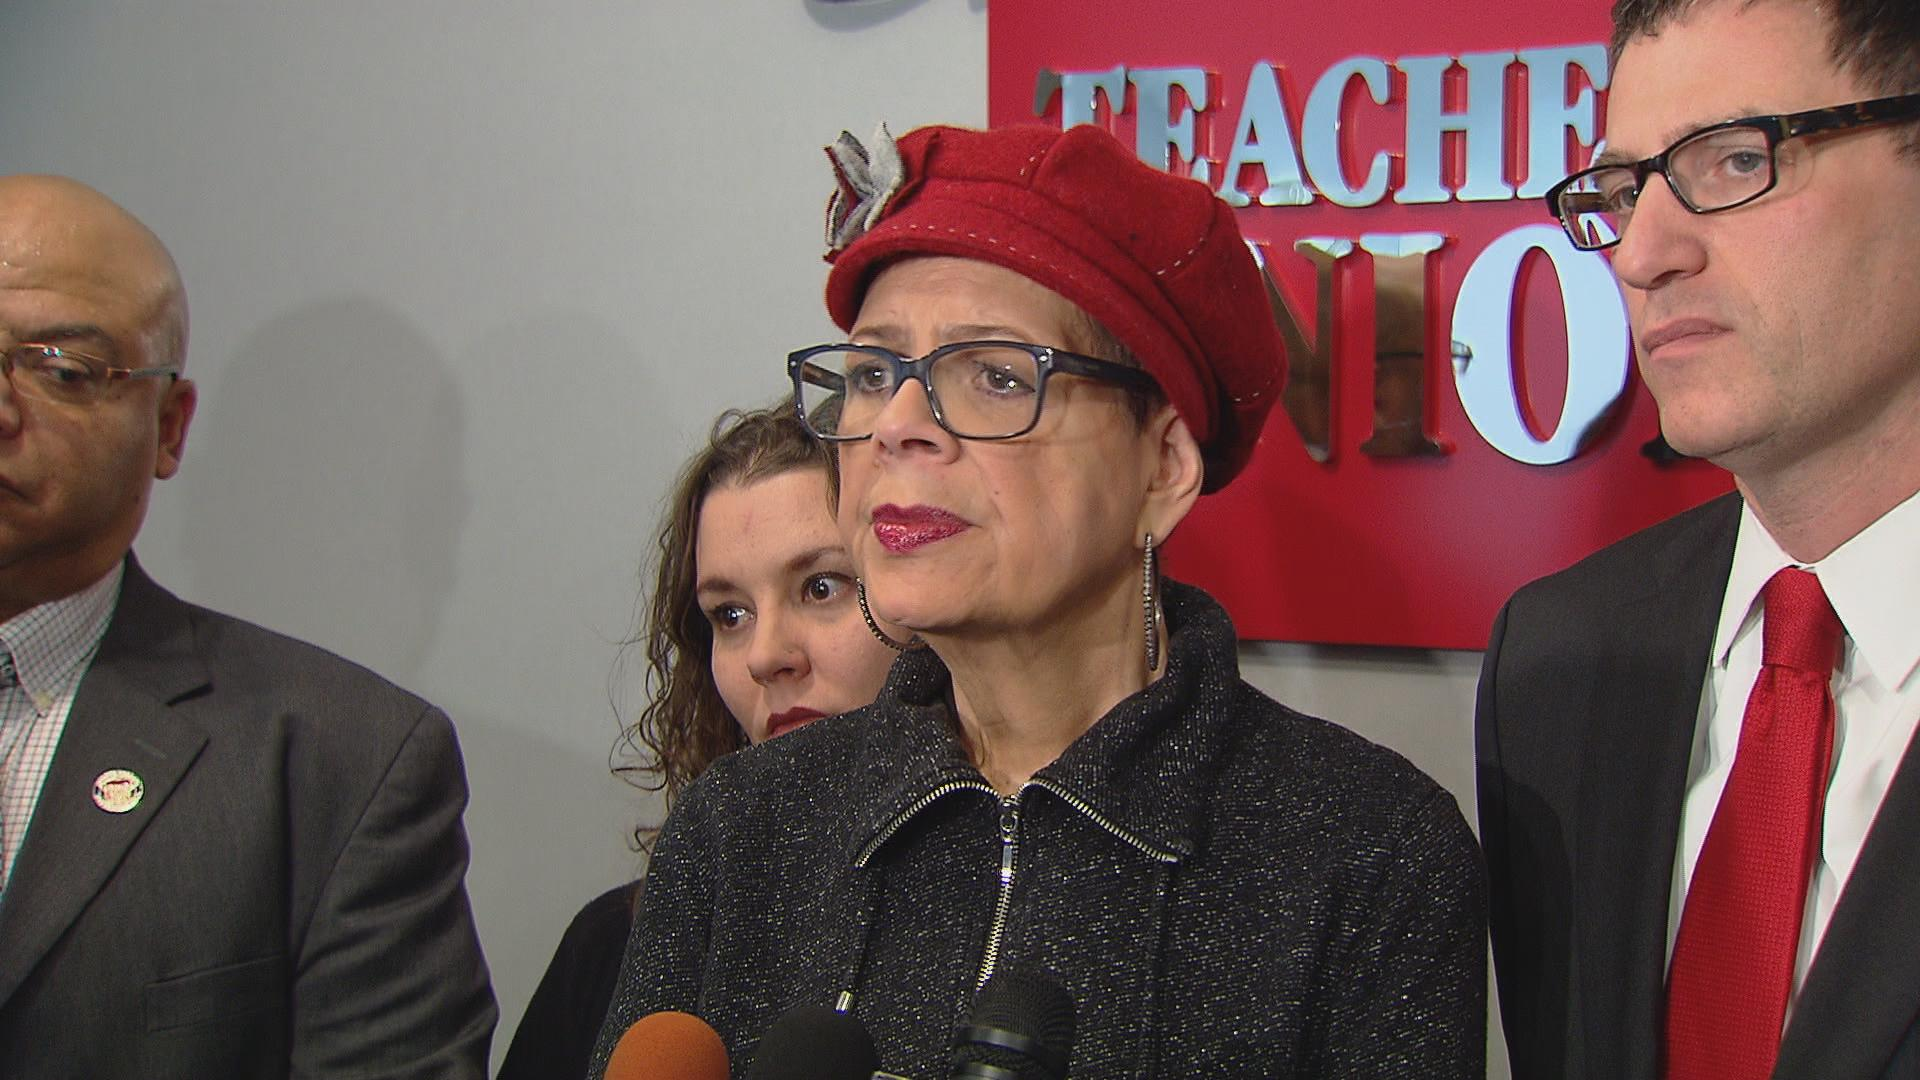 Karen Lewis on Jan. 20 responds to a proposal by Gov. Bruce Rauner and Republican leaders for a state takeover of CPS.